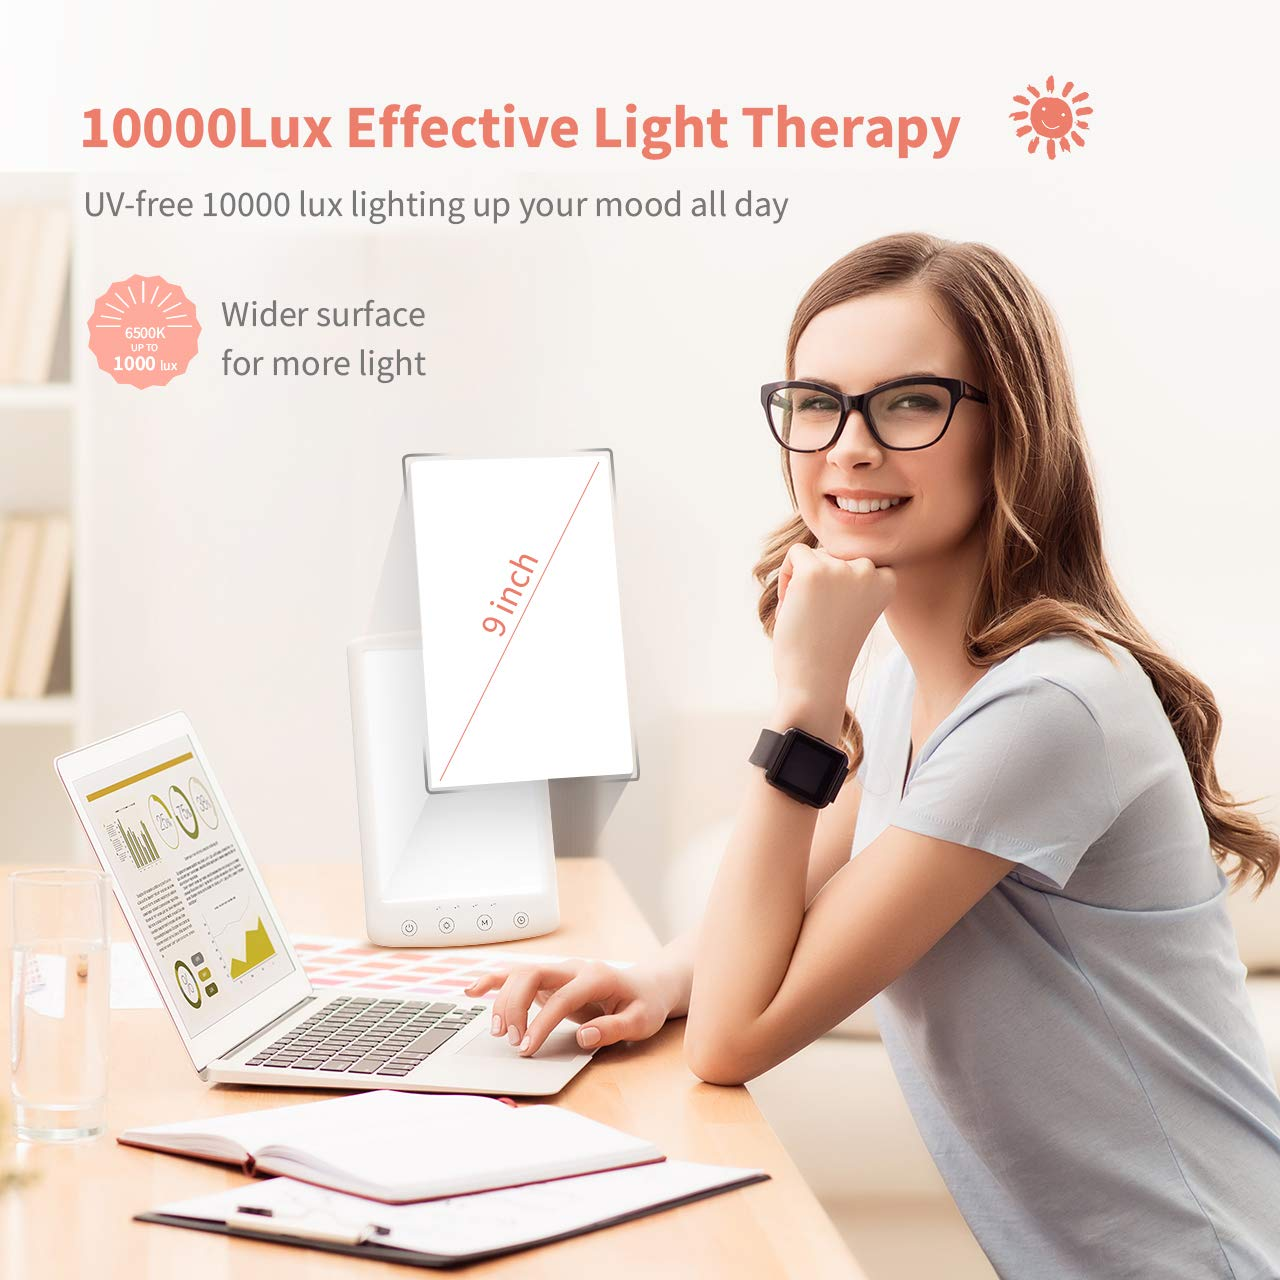 LITOM Light Therapy Lamp, 10000 Lux UV-free LED White Therapy Light with Adjustable Brightness and Color Temperature, 4 Timer Settings, Memory Function, USB Powered for Home or Office